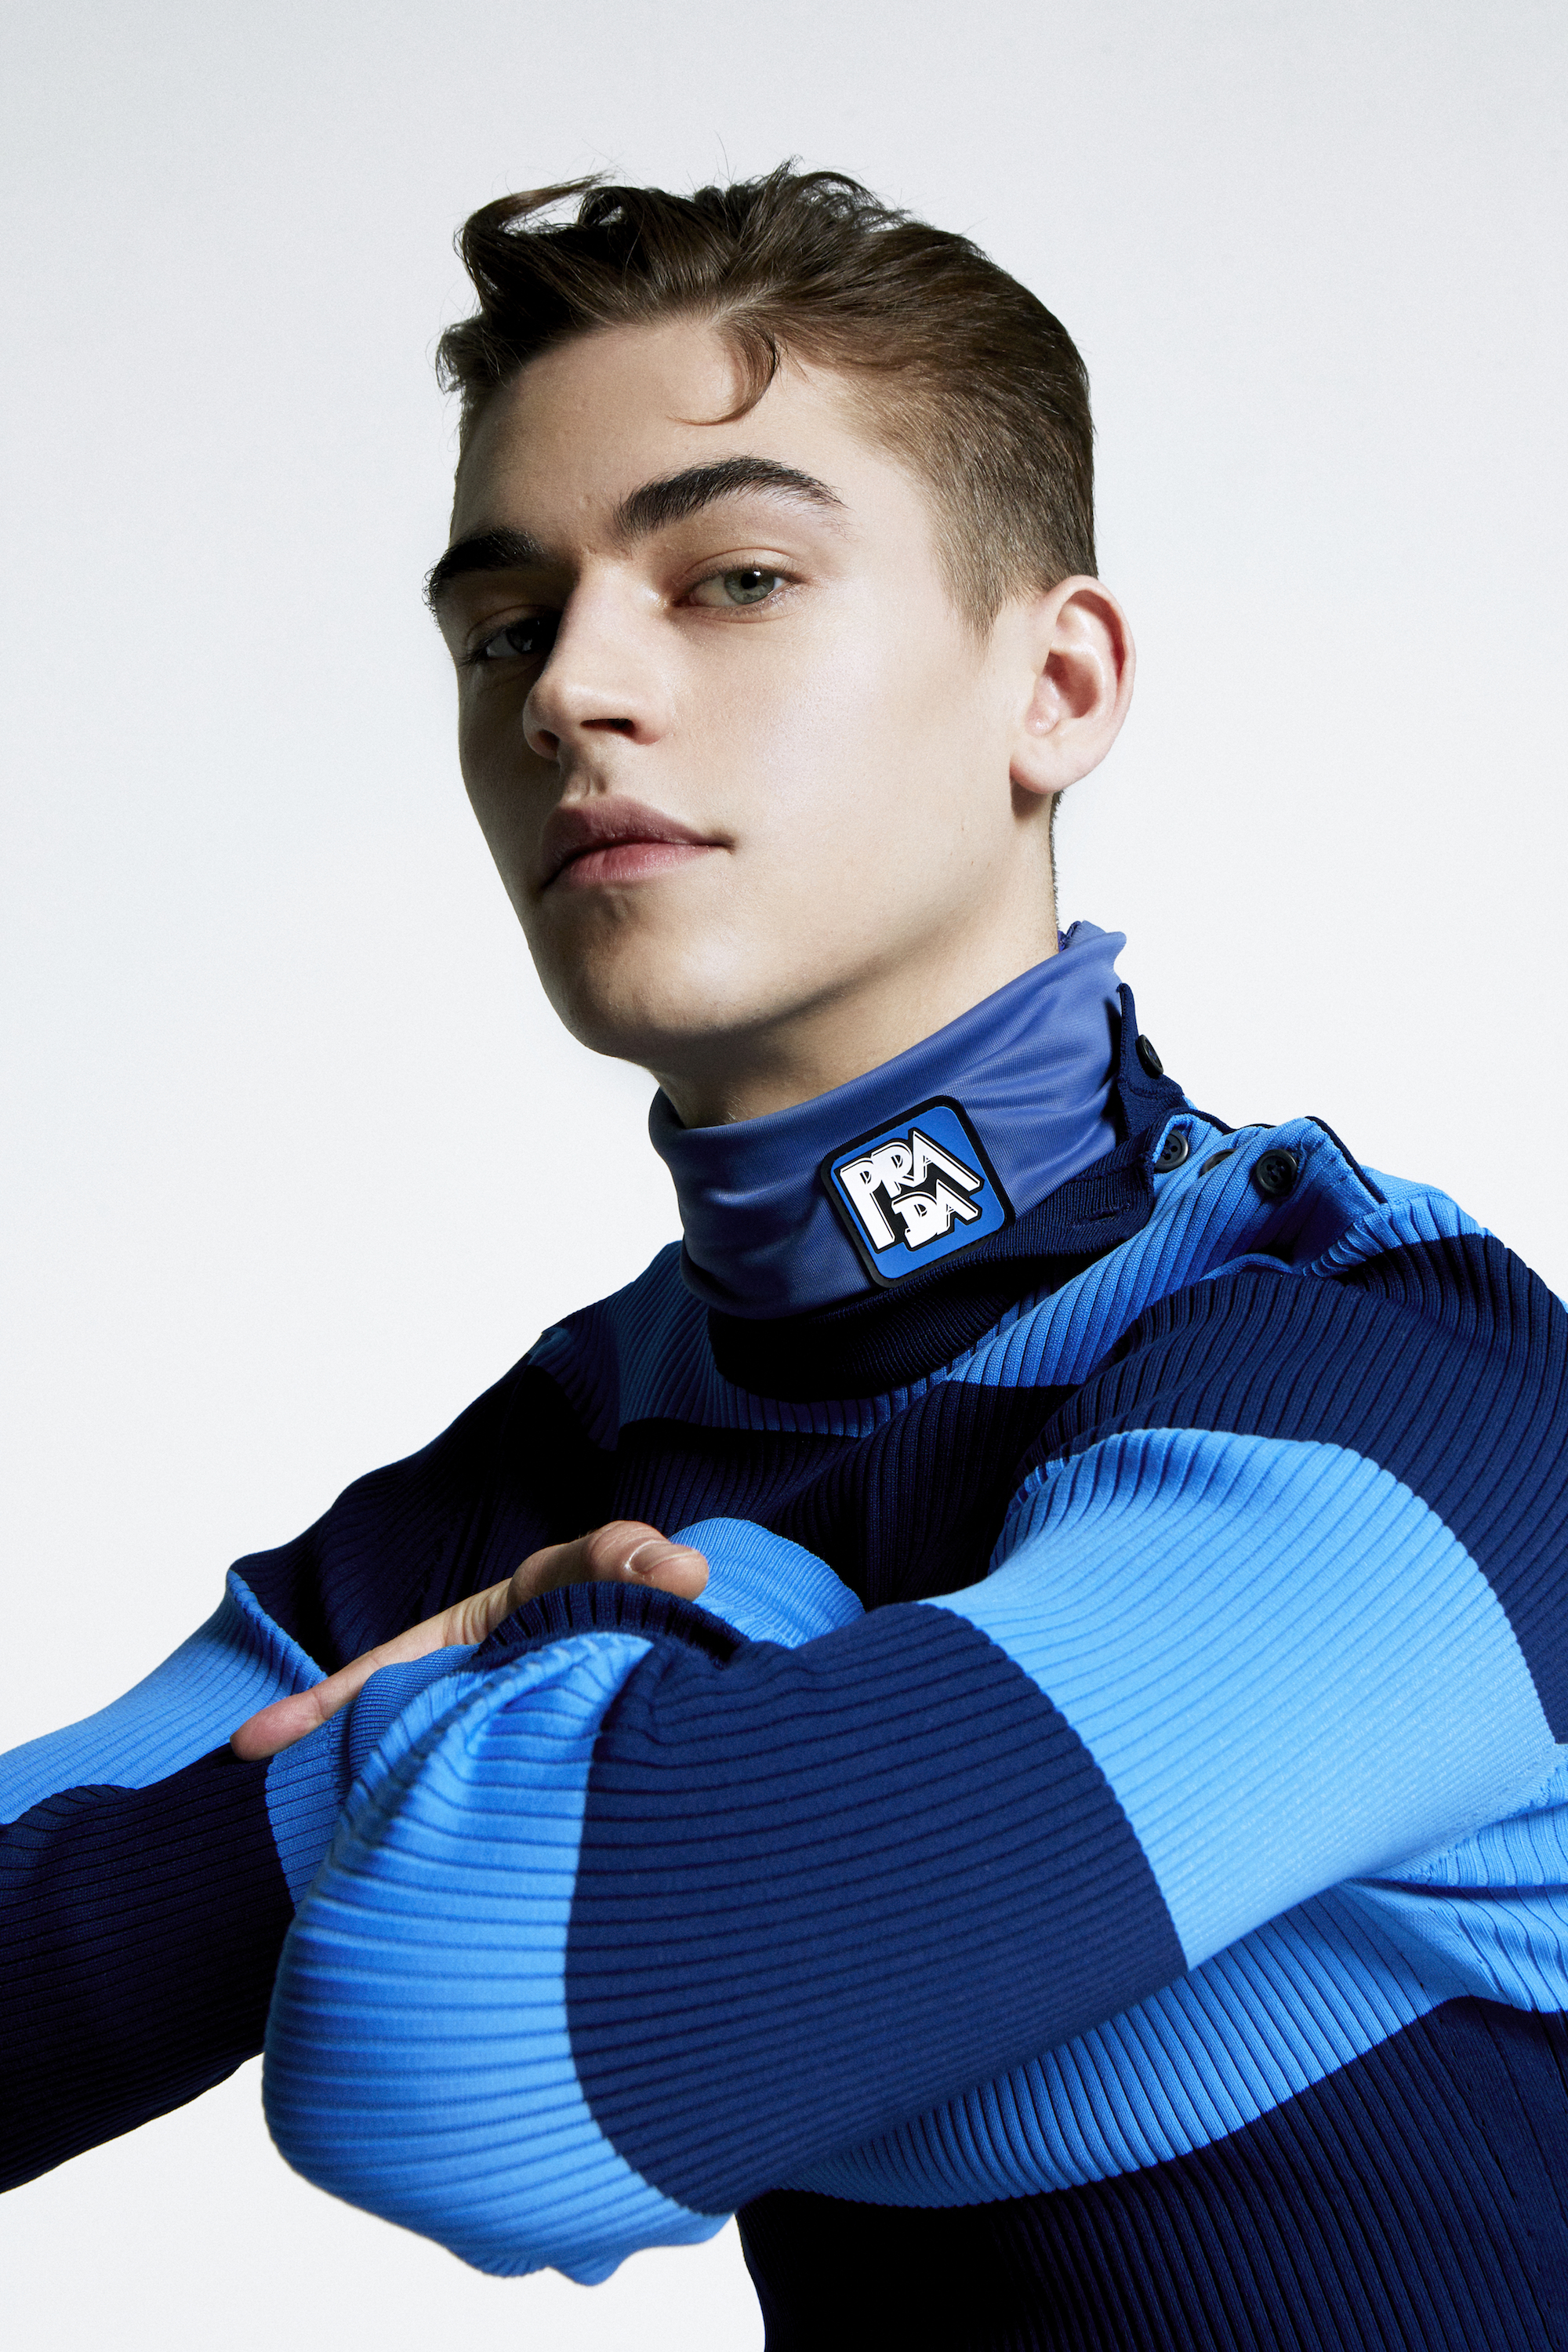 Hero Fiennes Tiffin in the Spring 19 issue of Wonderland in blue scuba top